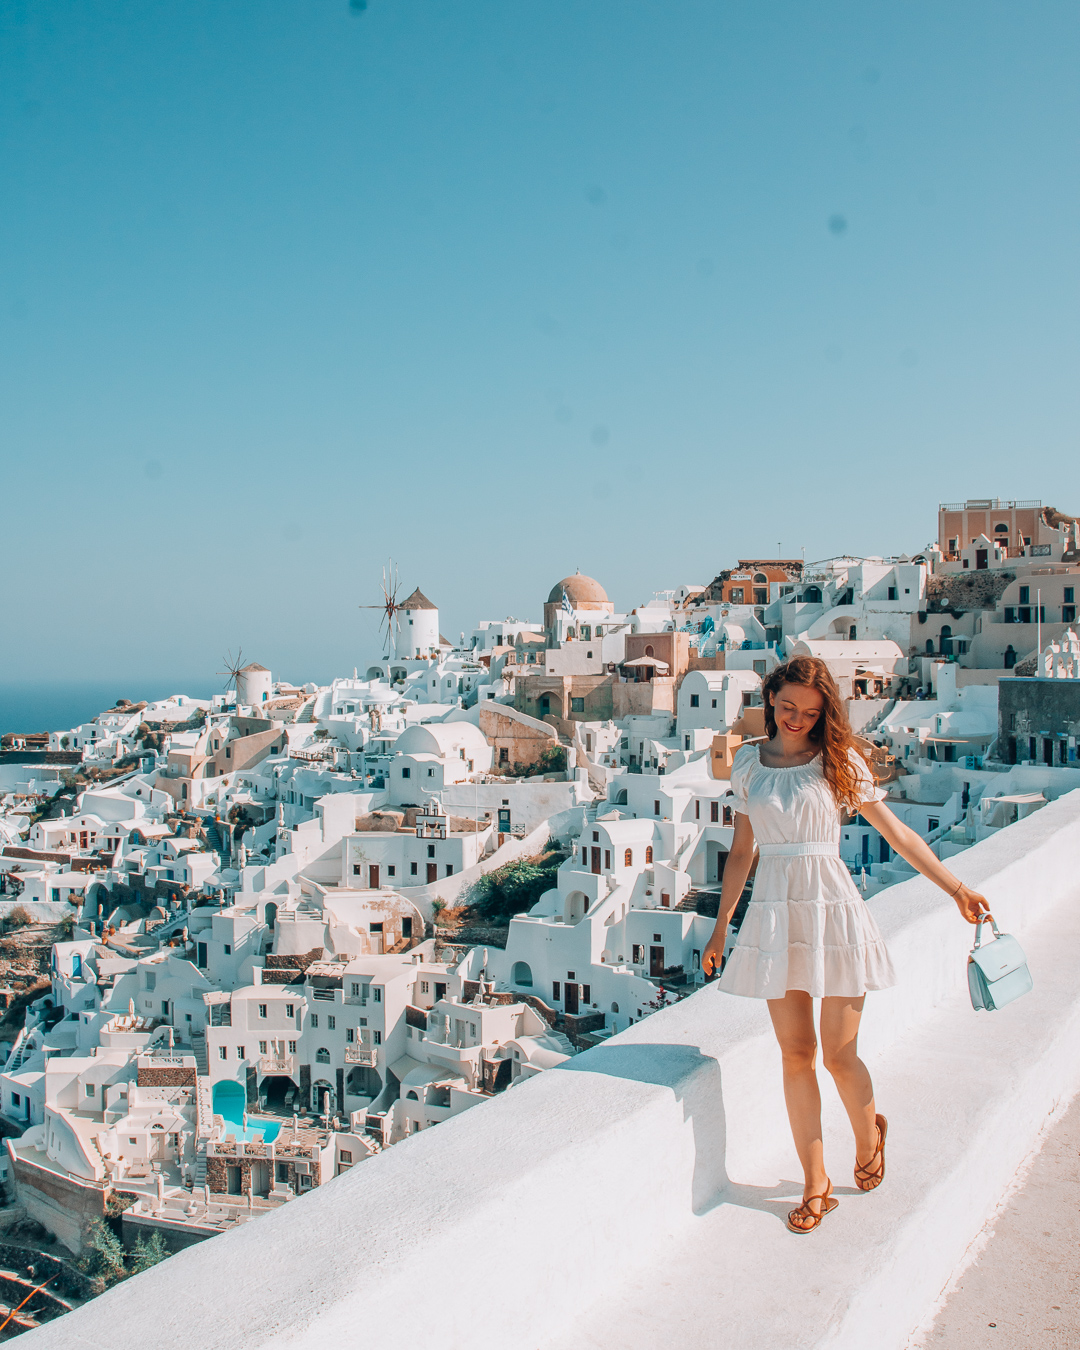 Happy girl at Oia Castle and view over white houses in Santorini